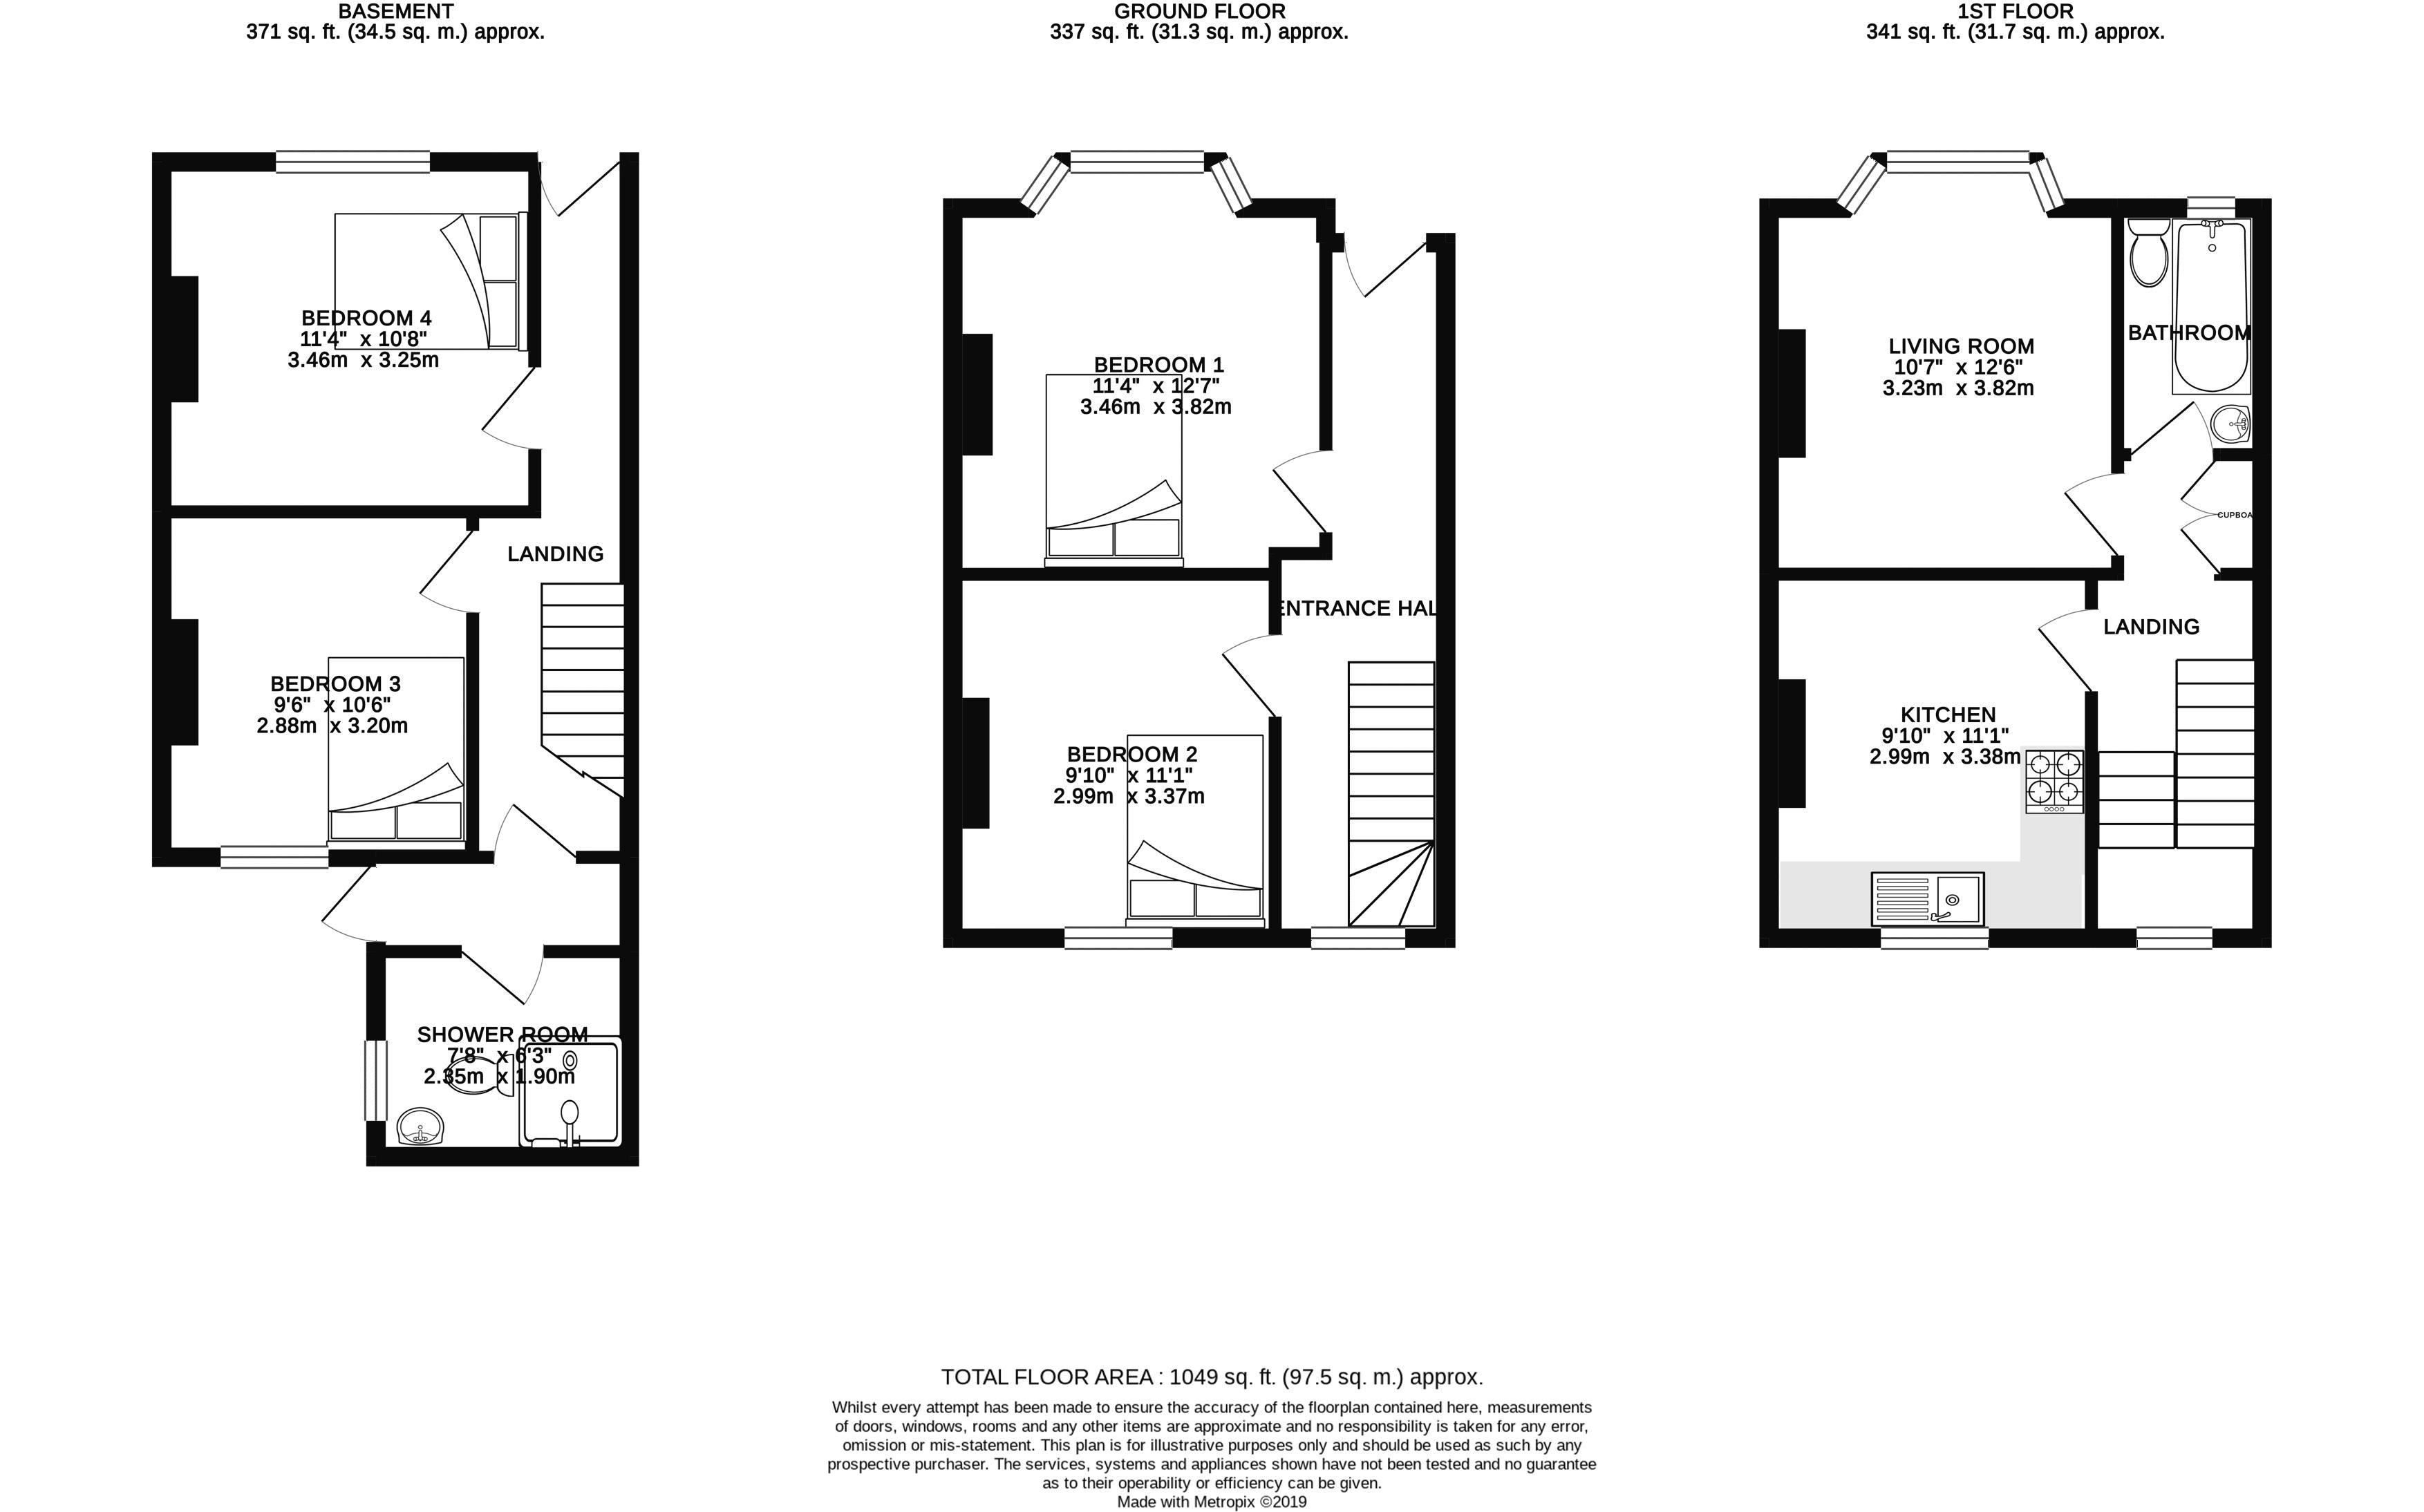 Floor plans for Newmarket Road, Brighton property for sale in , Brighton by Coapt